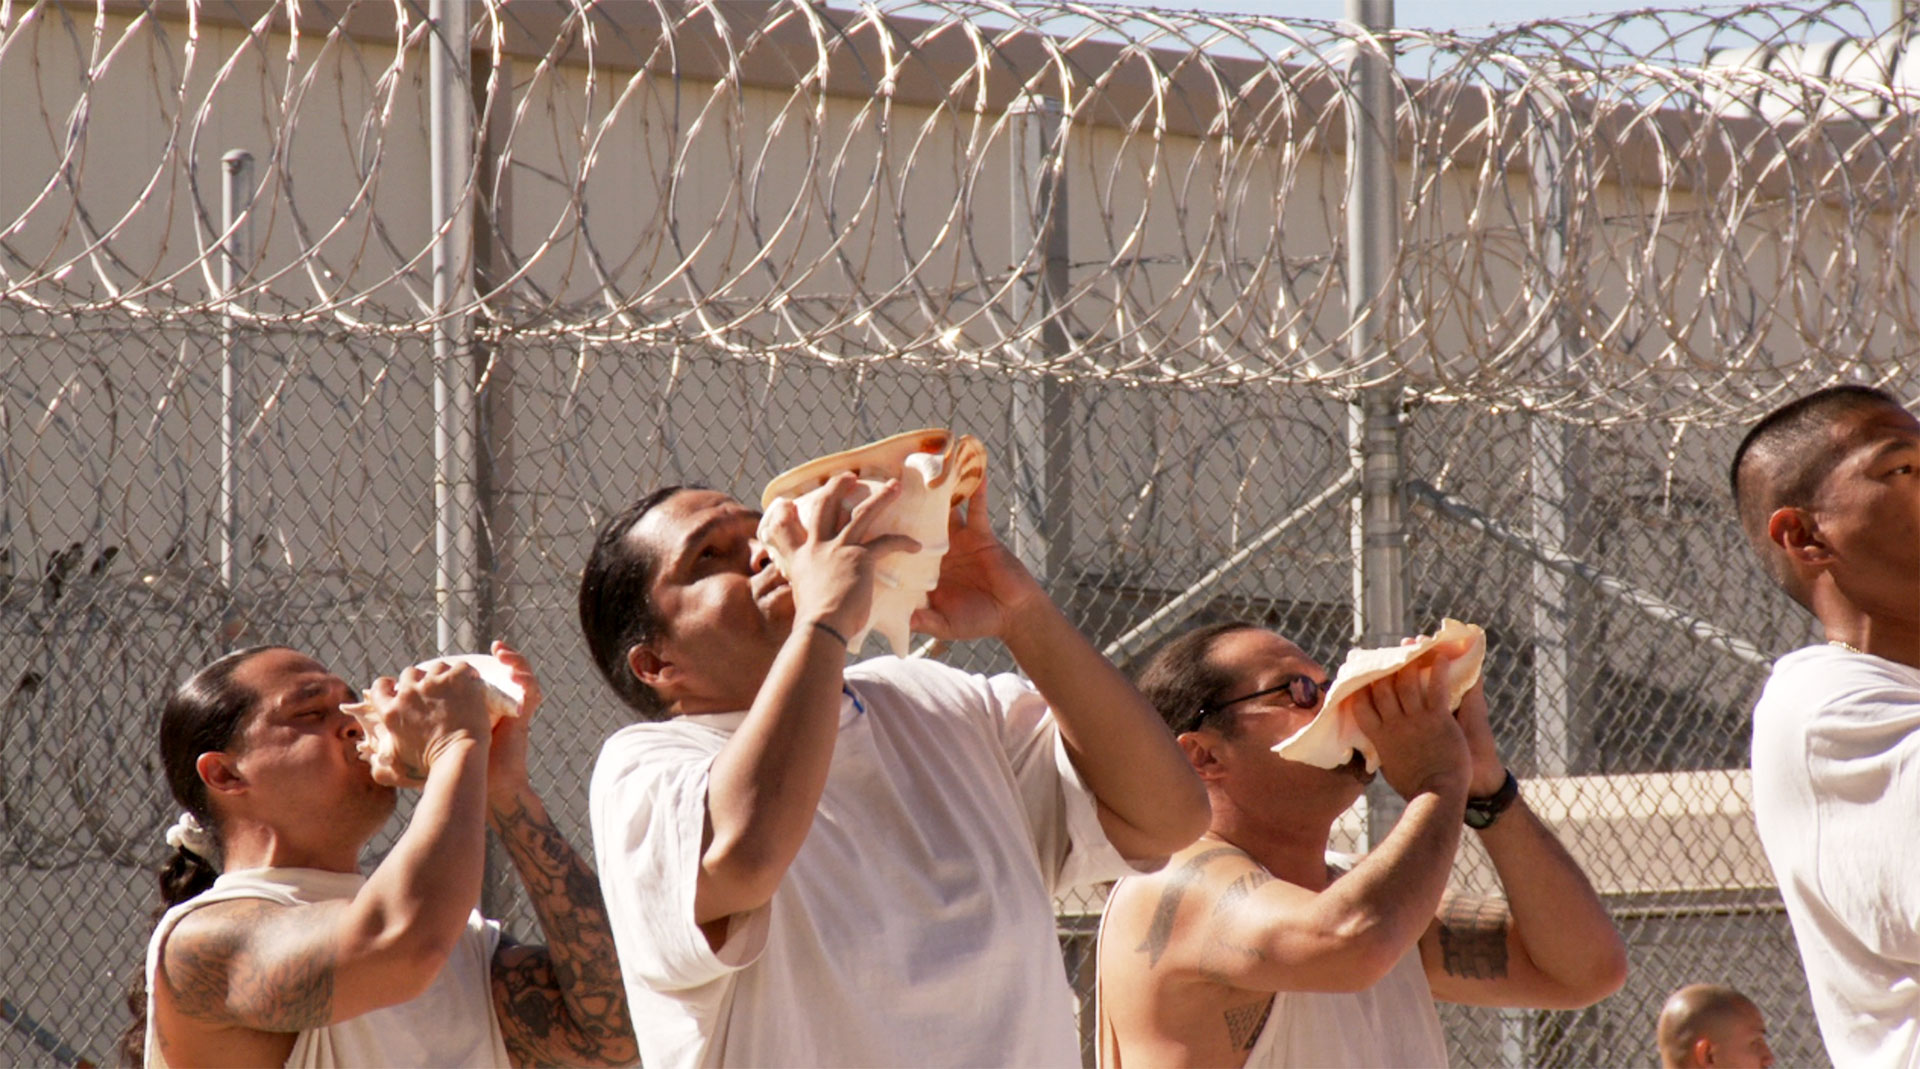 Native Hawaiian prisoners perform a ritual ceremony using conch shells as instruments